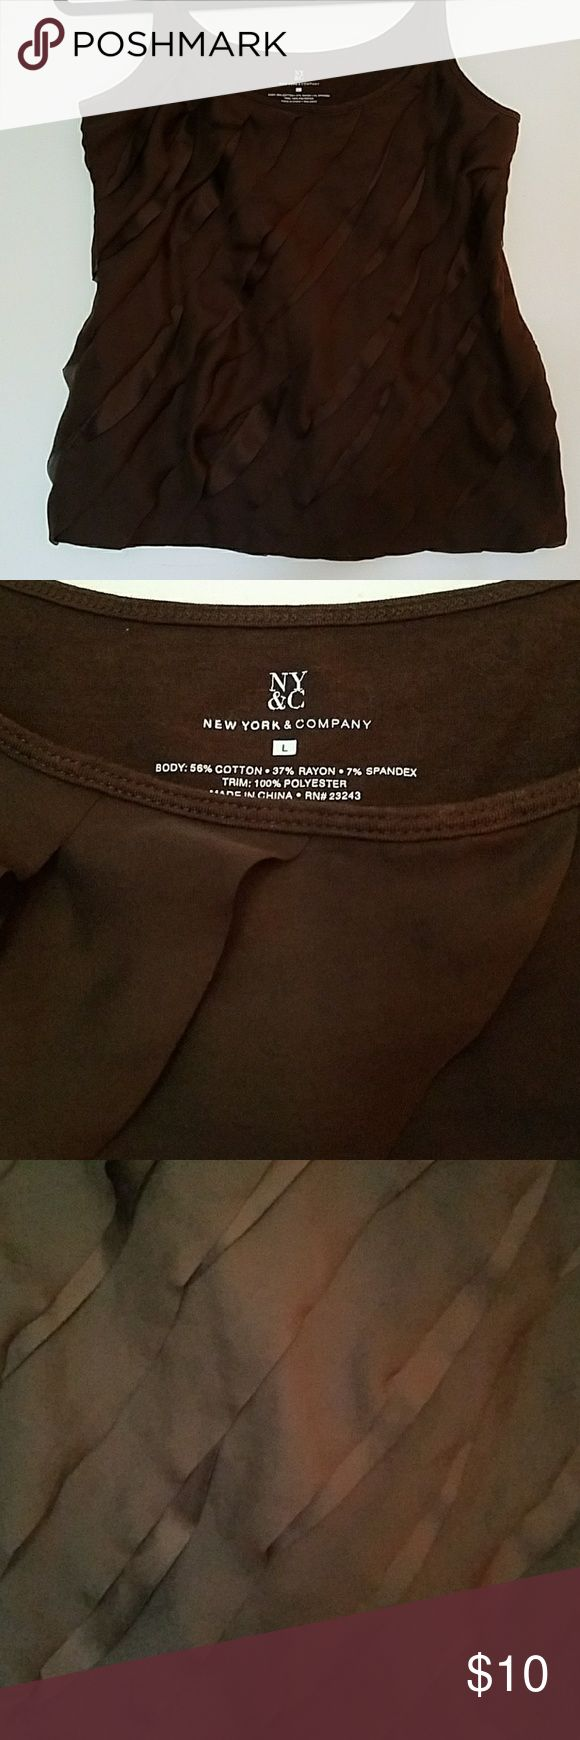 Great fall cami Brown cami with mixed satin & sheer layers New York & Company Tops Camisoles